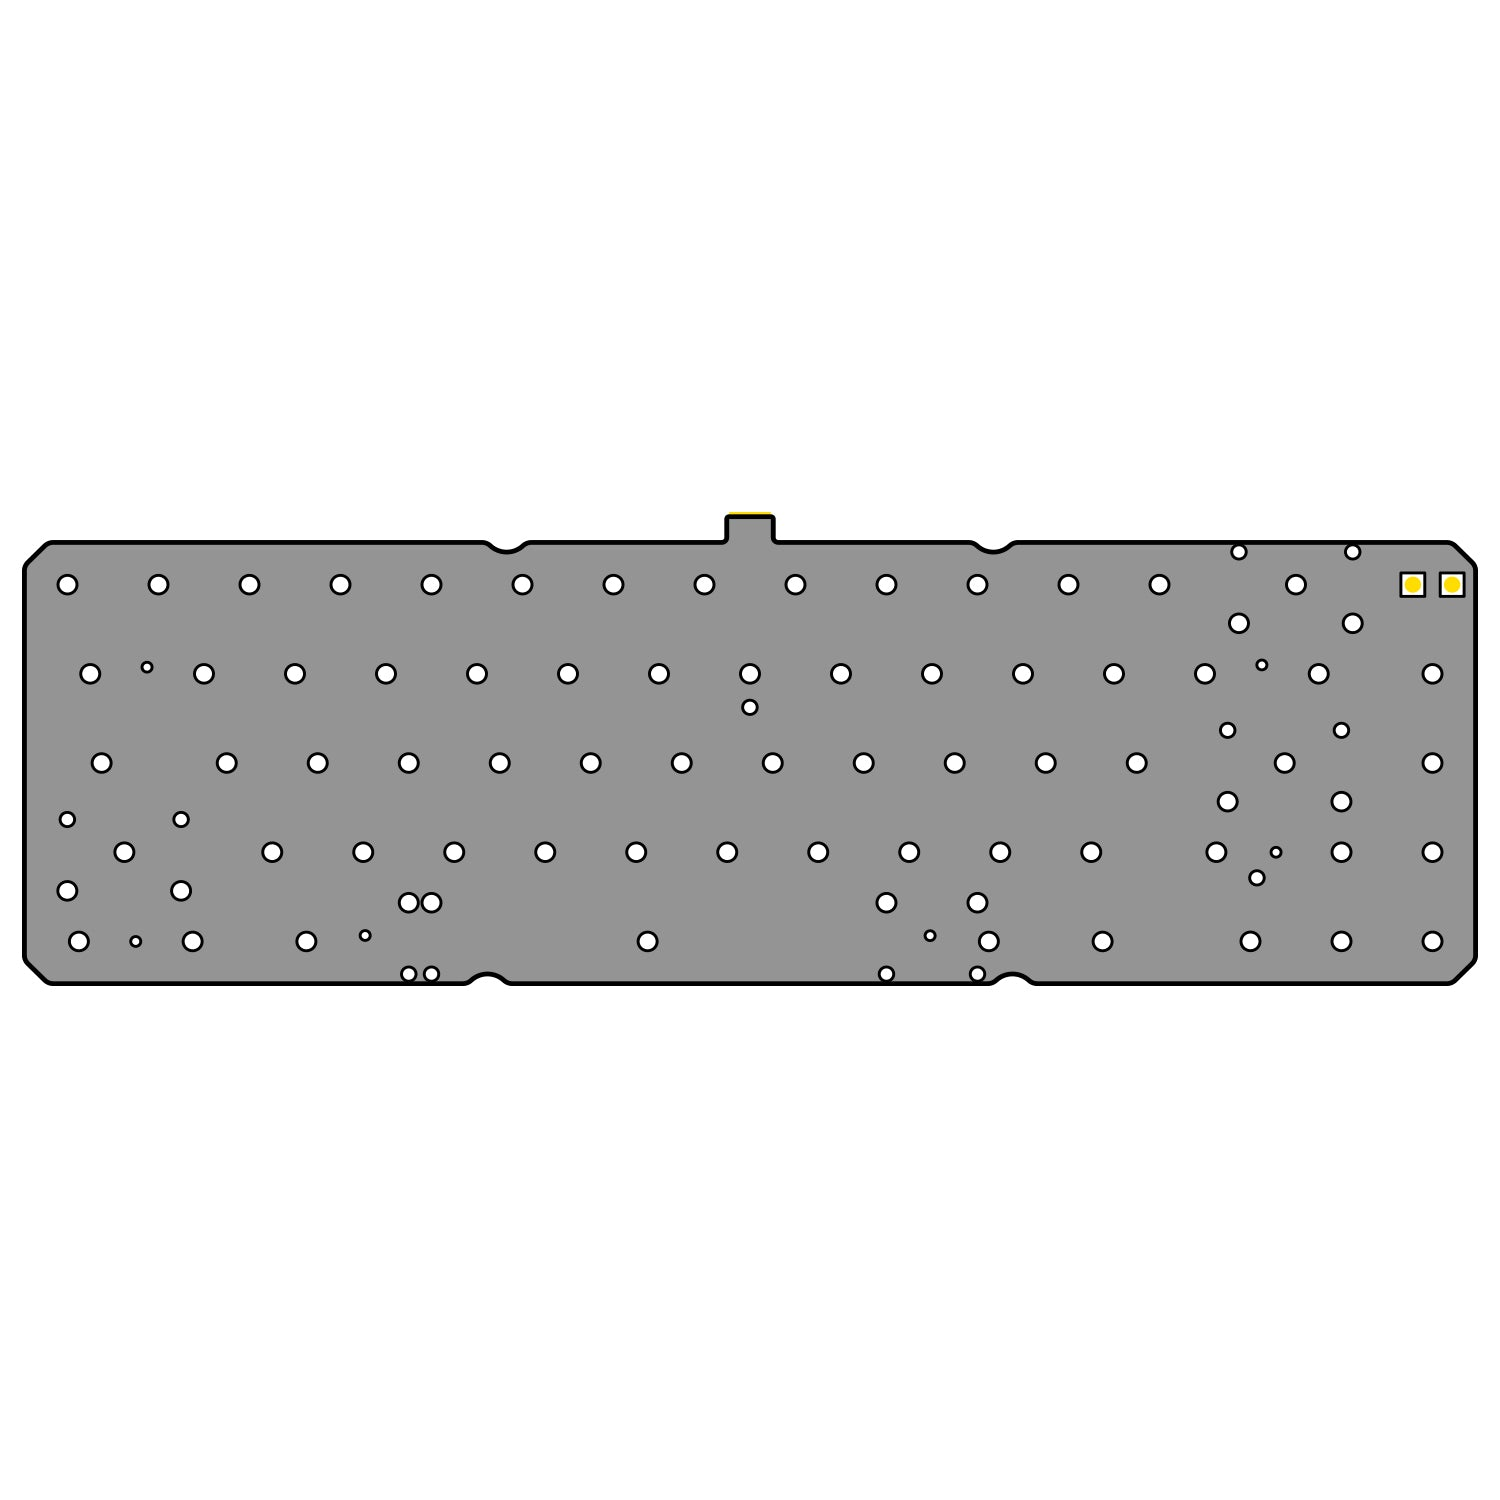 [GB] Extra PCB & Plate of Think 6.5 V2